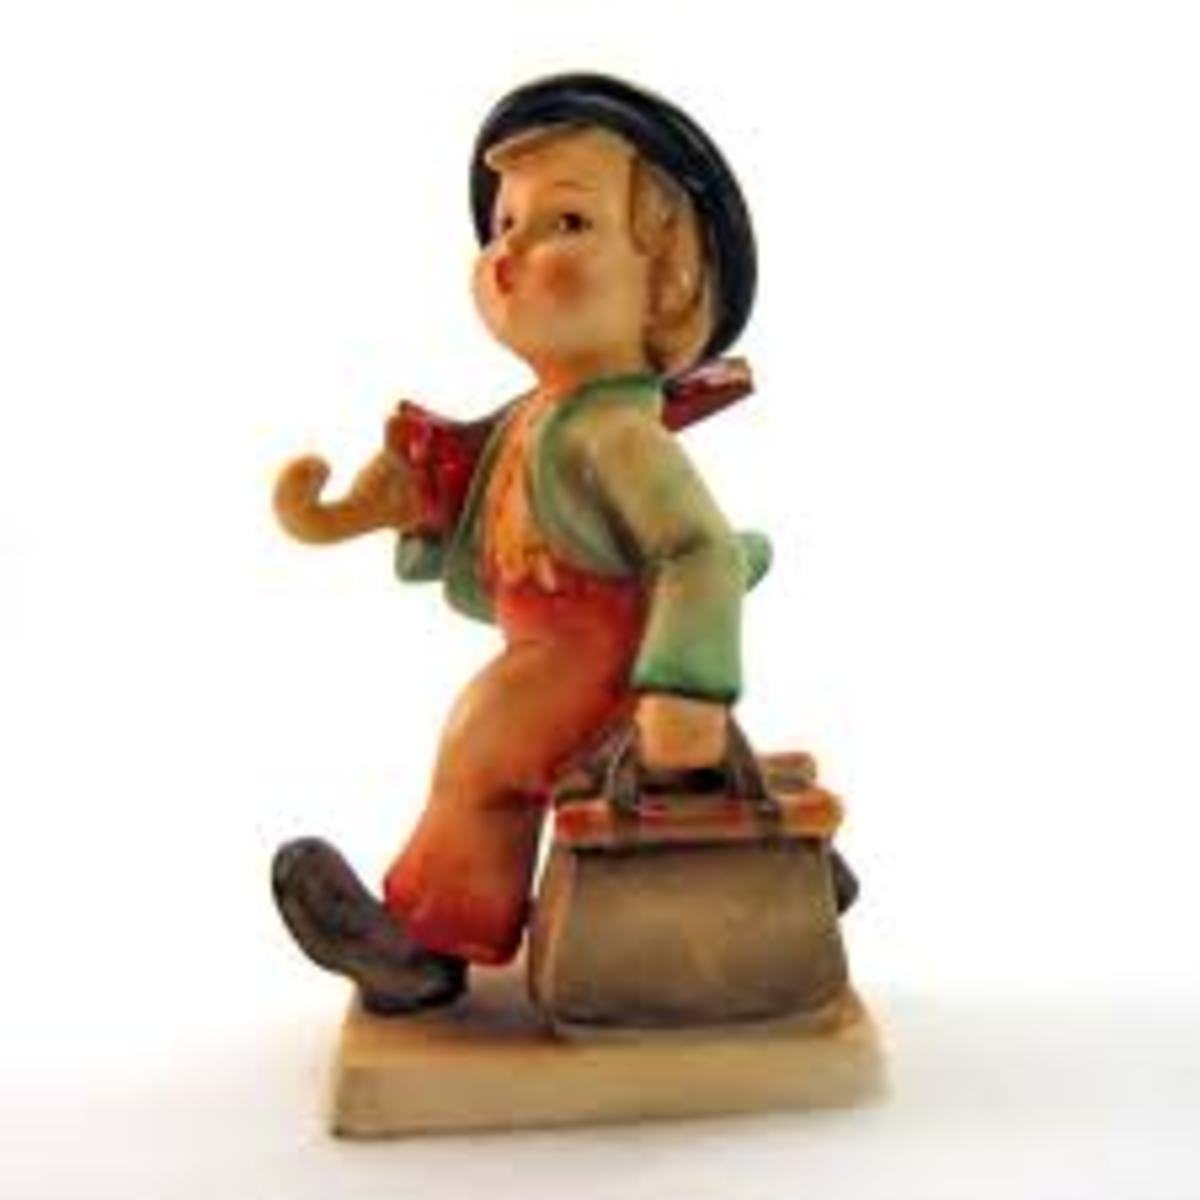 Hummel Figurines - Boy